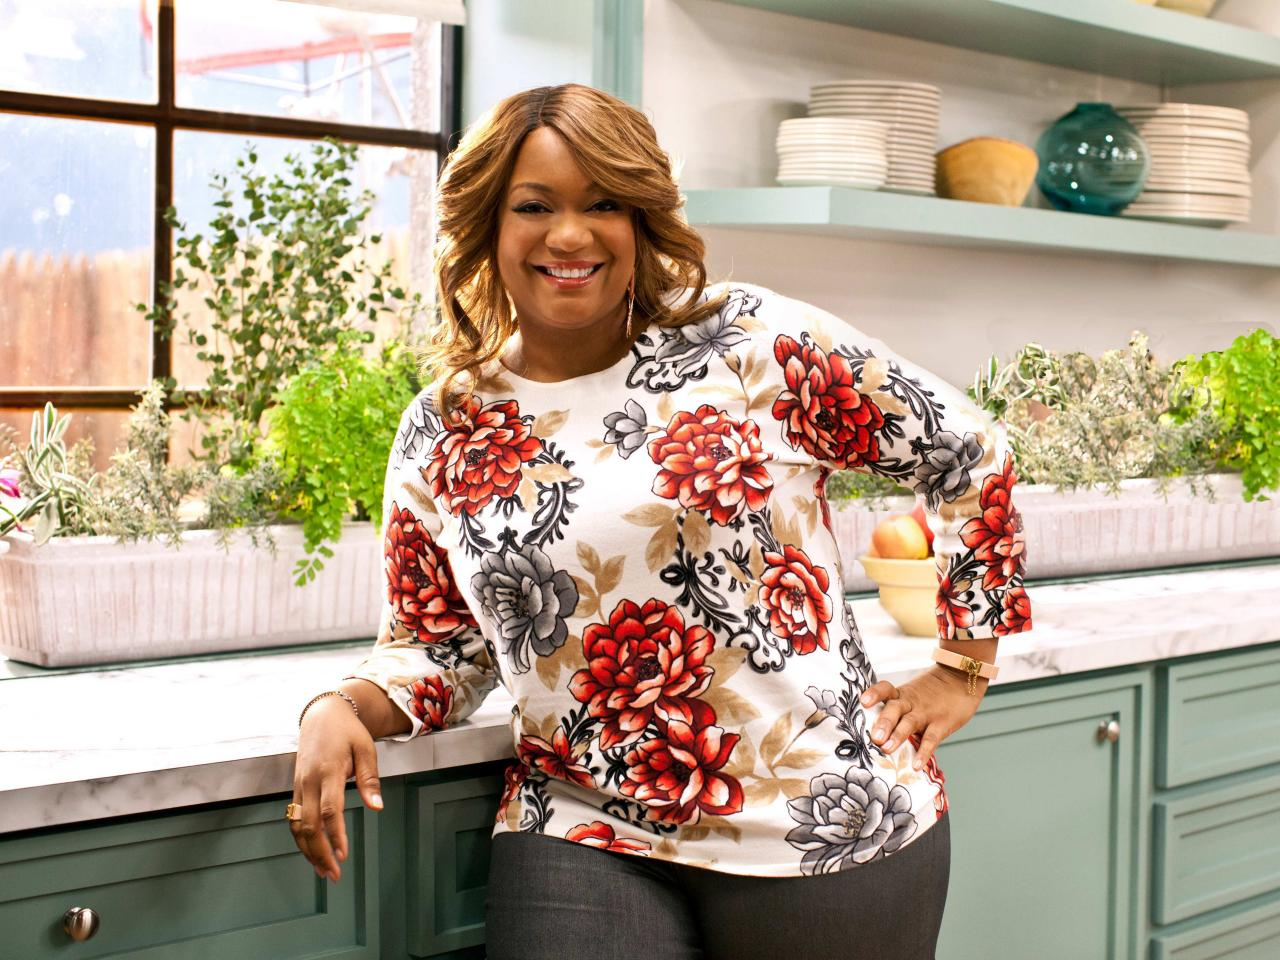 Food Network's Star Sunny Anderson Shames Women for Sexual Harassment Silence